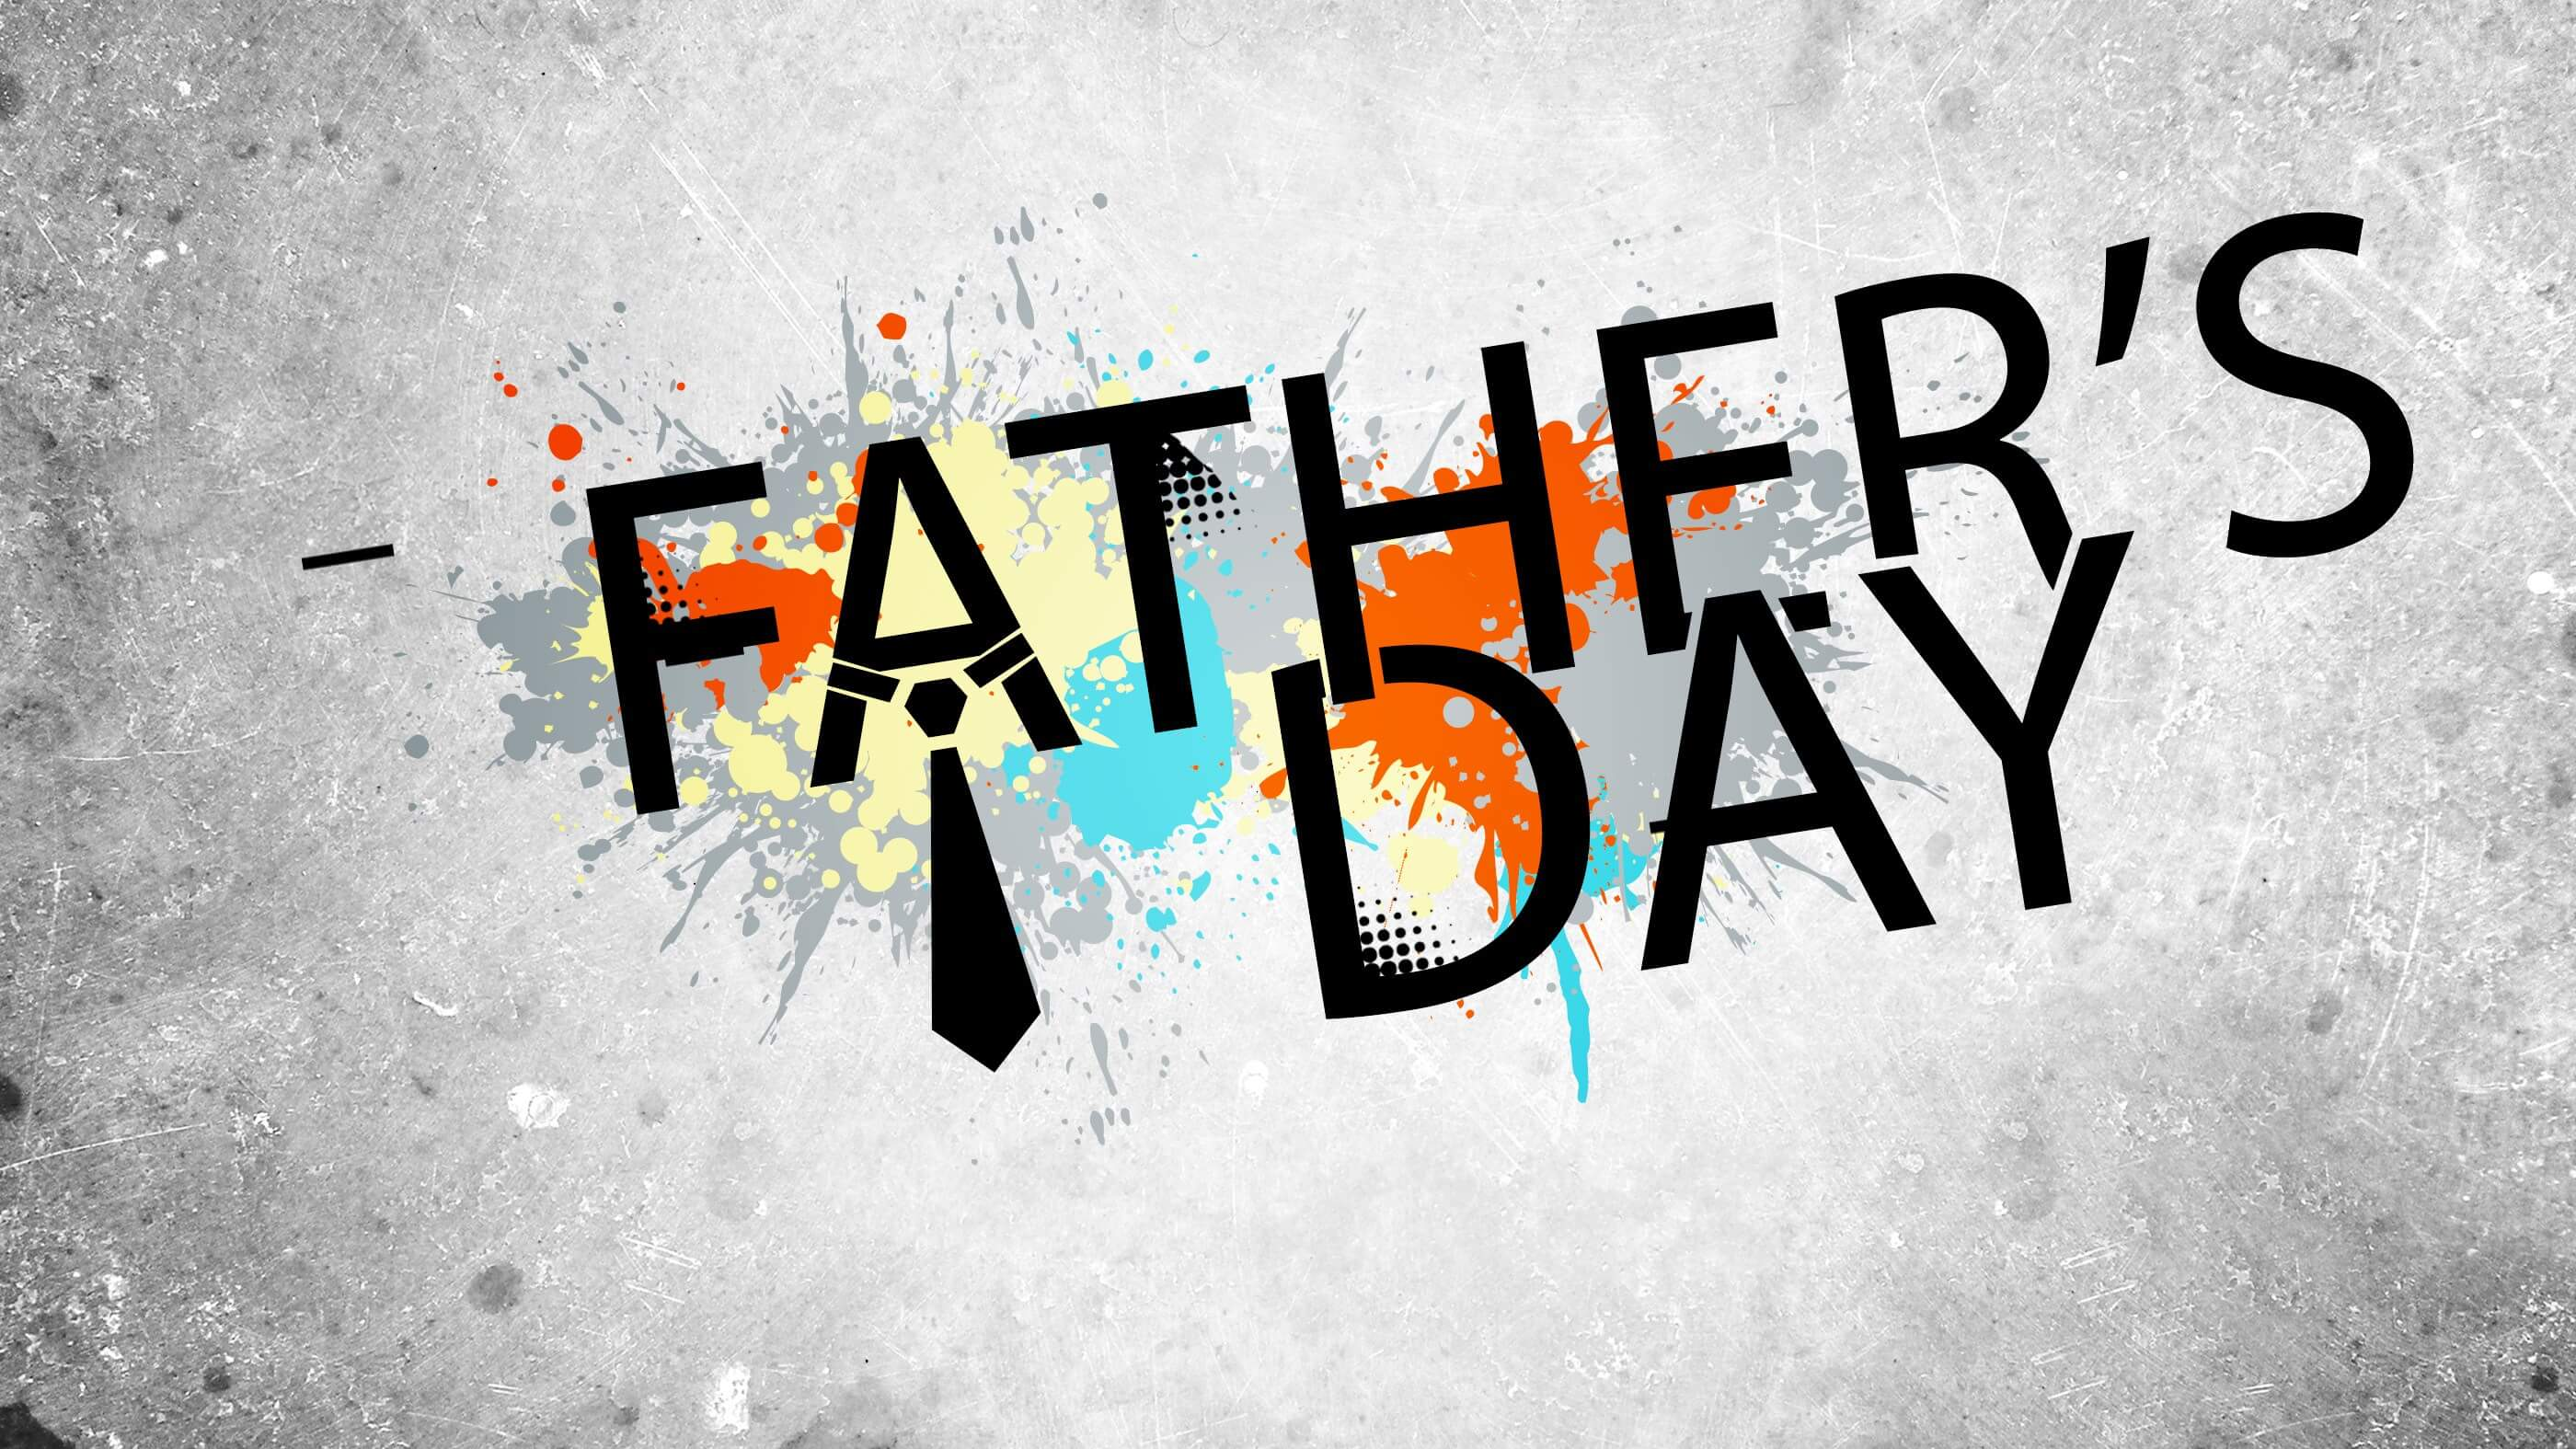 happy fathers day latest modern hd wallpaper